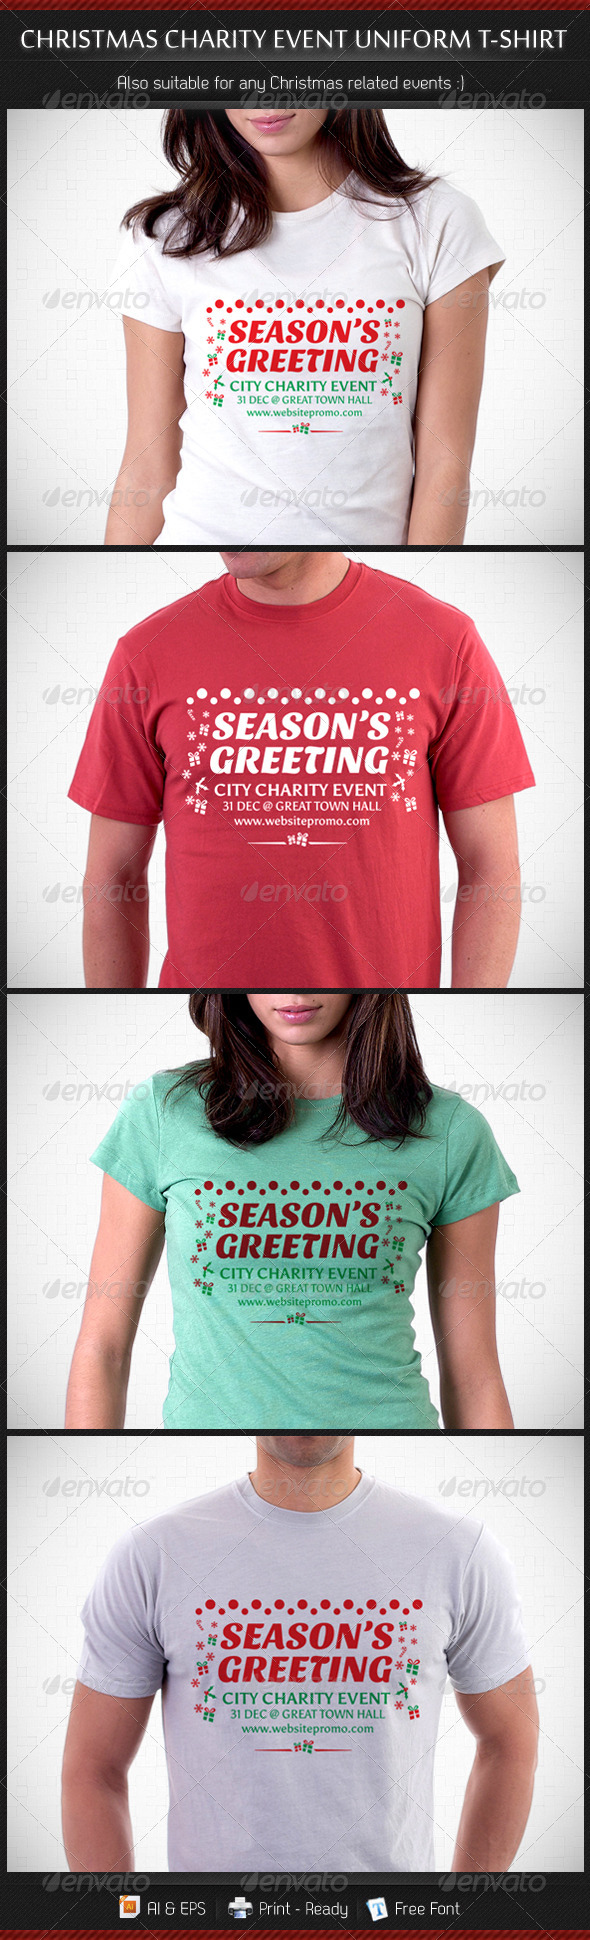 Christmas Charity Event Uniform T-Shirt Template - Events T-Shirts